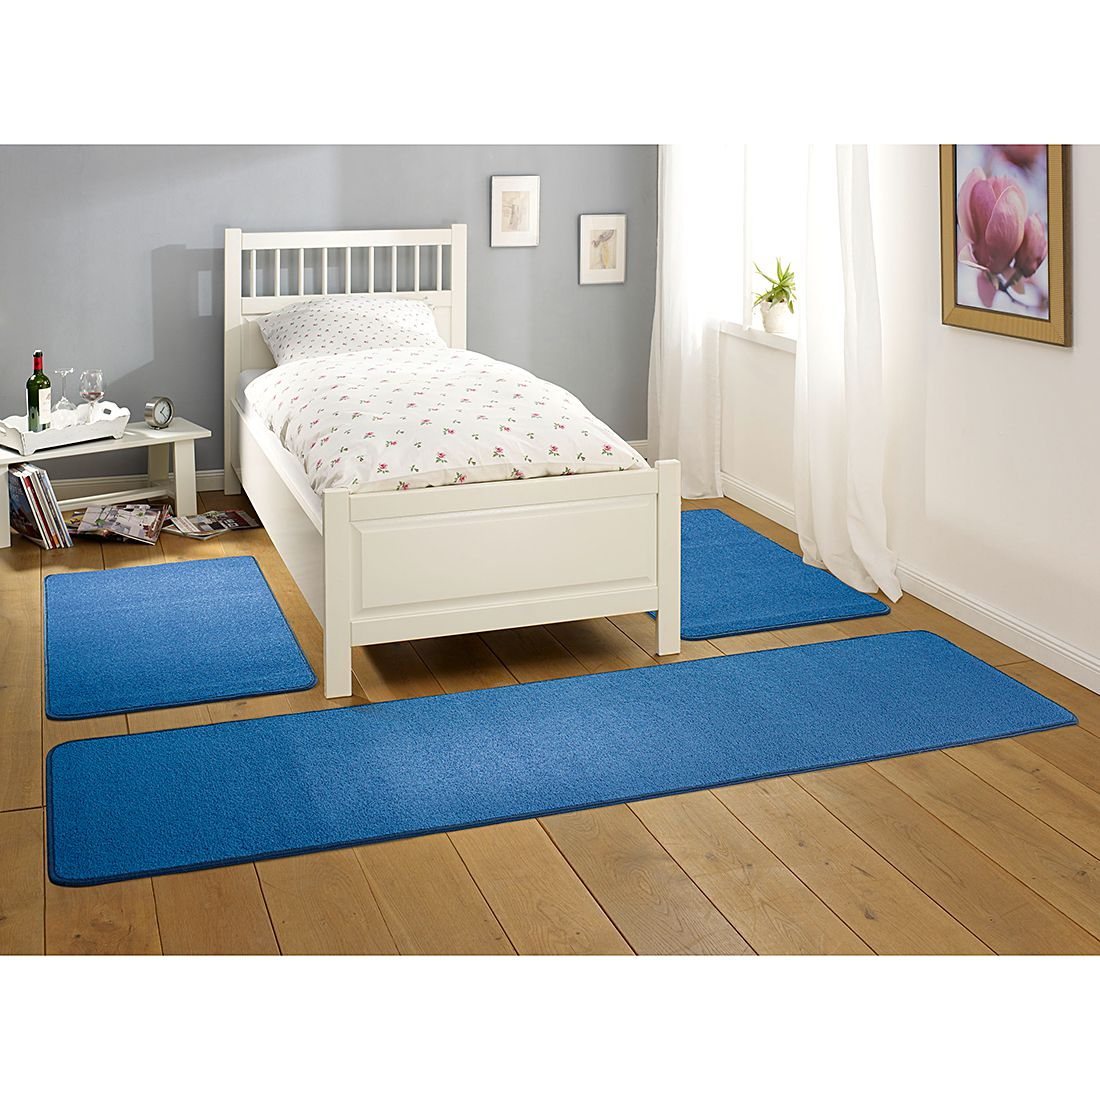 Tapis de lit Nasty - Bleu, Hanse Home Collection